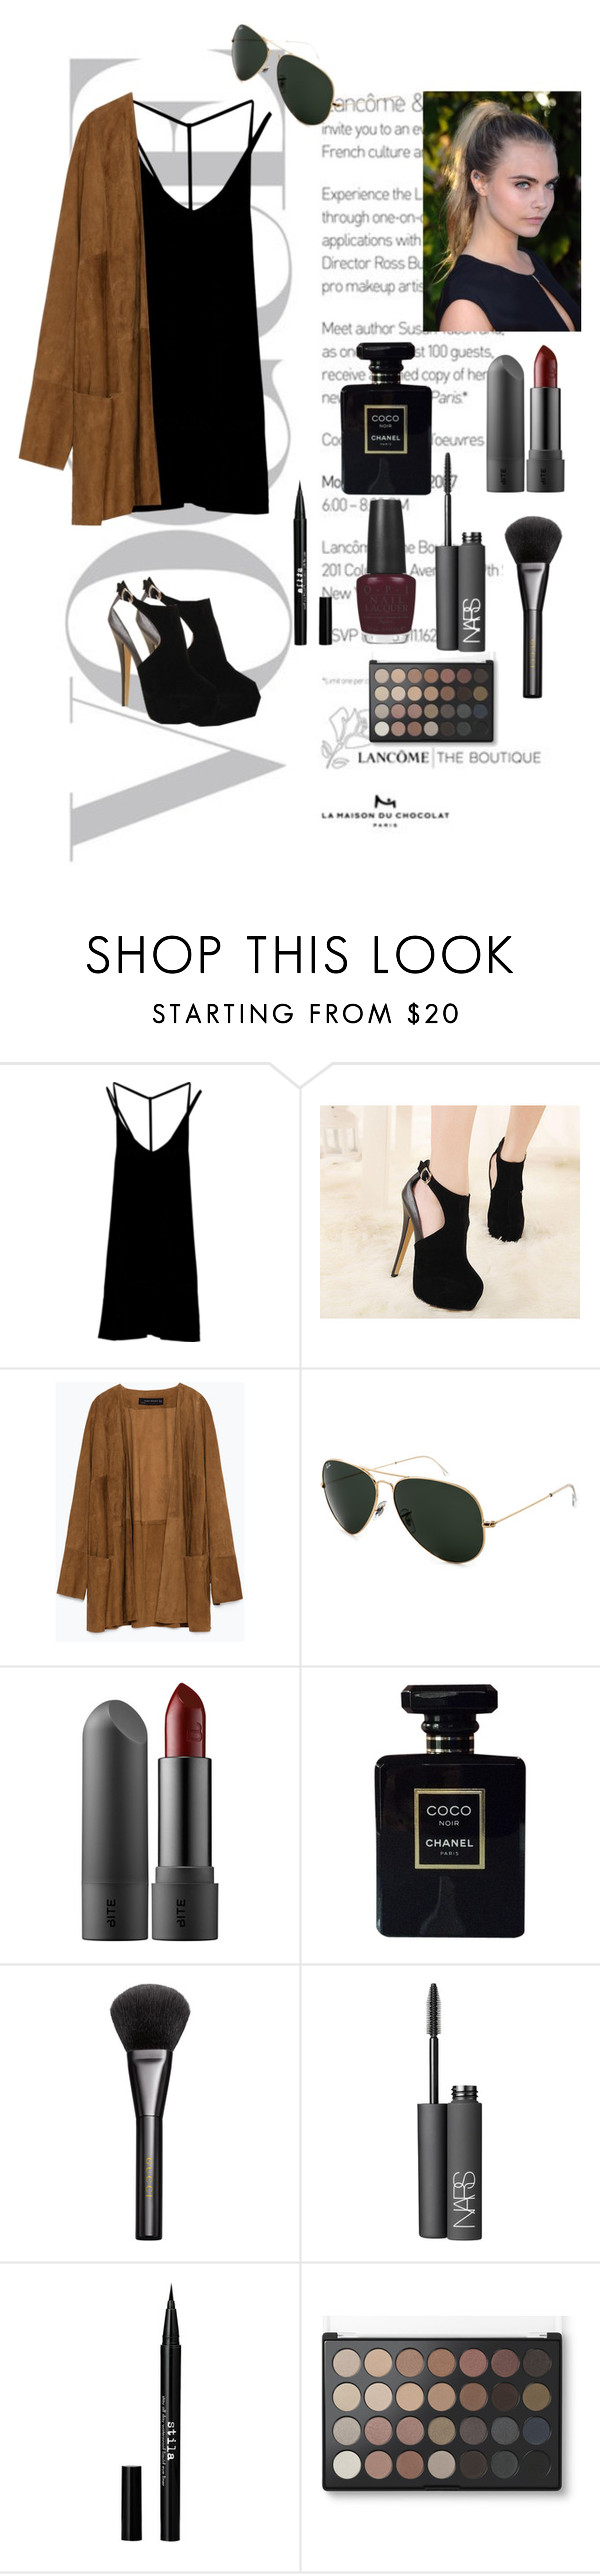 """""""Urban Chic"""" by cameronberlin ❤ liked on Polyvore featuring RVCA, Zara, Ray-Ban, Chanel, Gucci, NARS Cosmetics, Stila and OPI"""